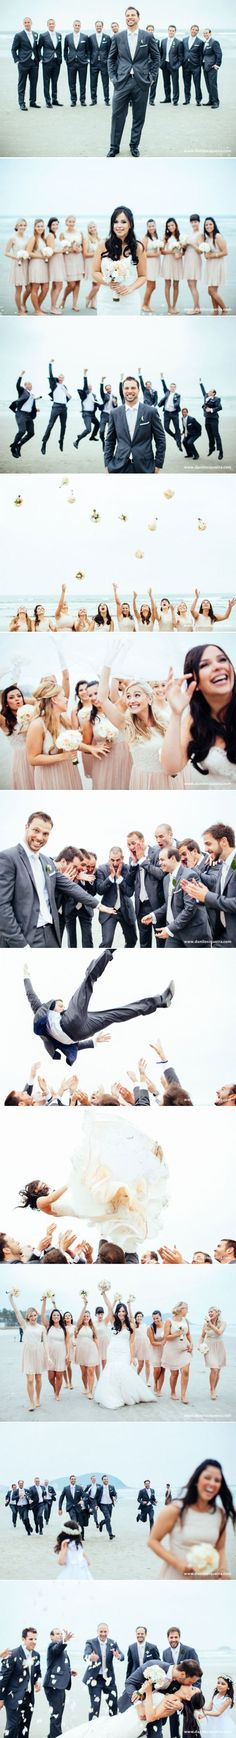 Bridesmaids and groomsmen - beautiful pictures!